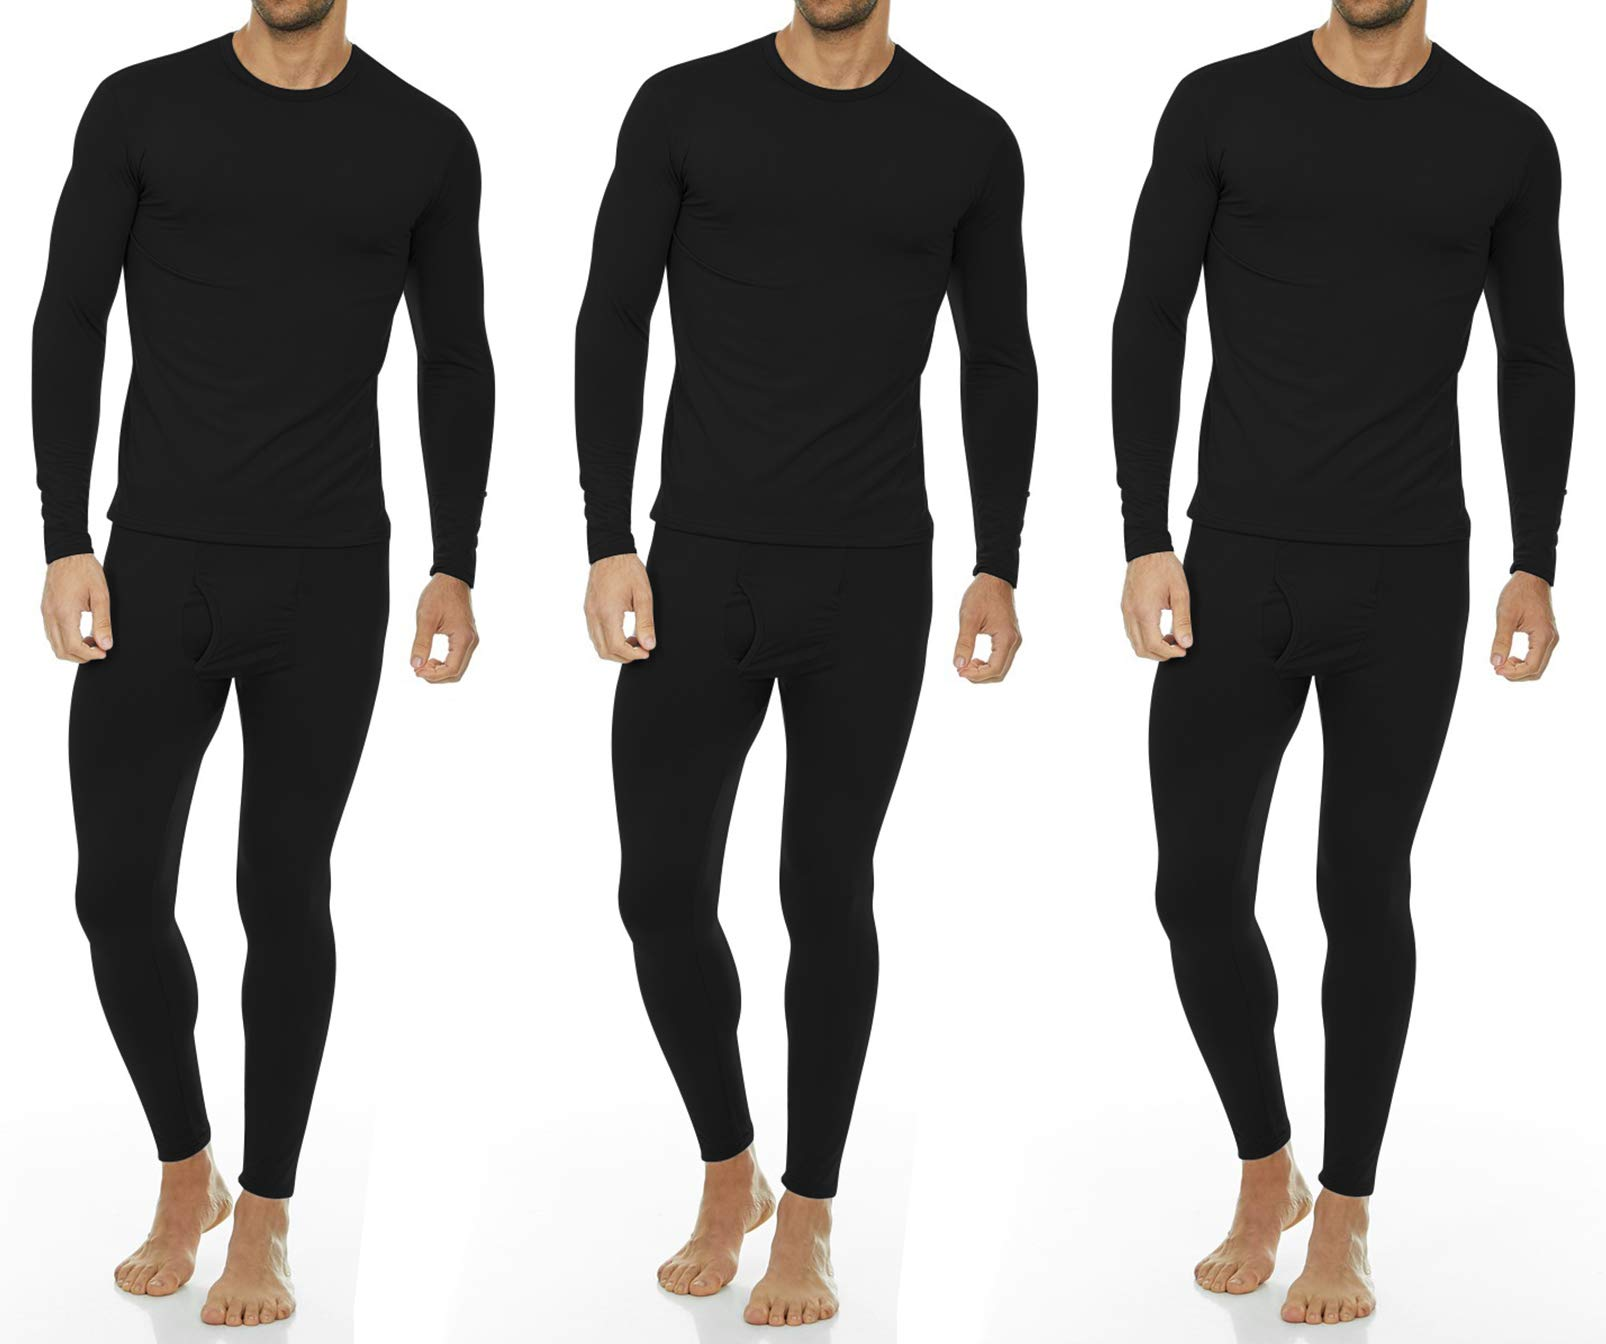 Thermajohn Men's Ultra Soft Thermal Underwear Long Johns Set with Fleece Lined (XX-Large, 3 Pack - Black) by Thermajohn (Image #1)